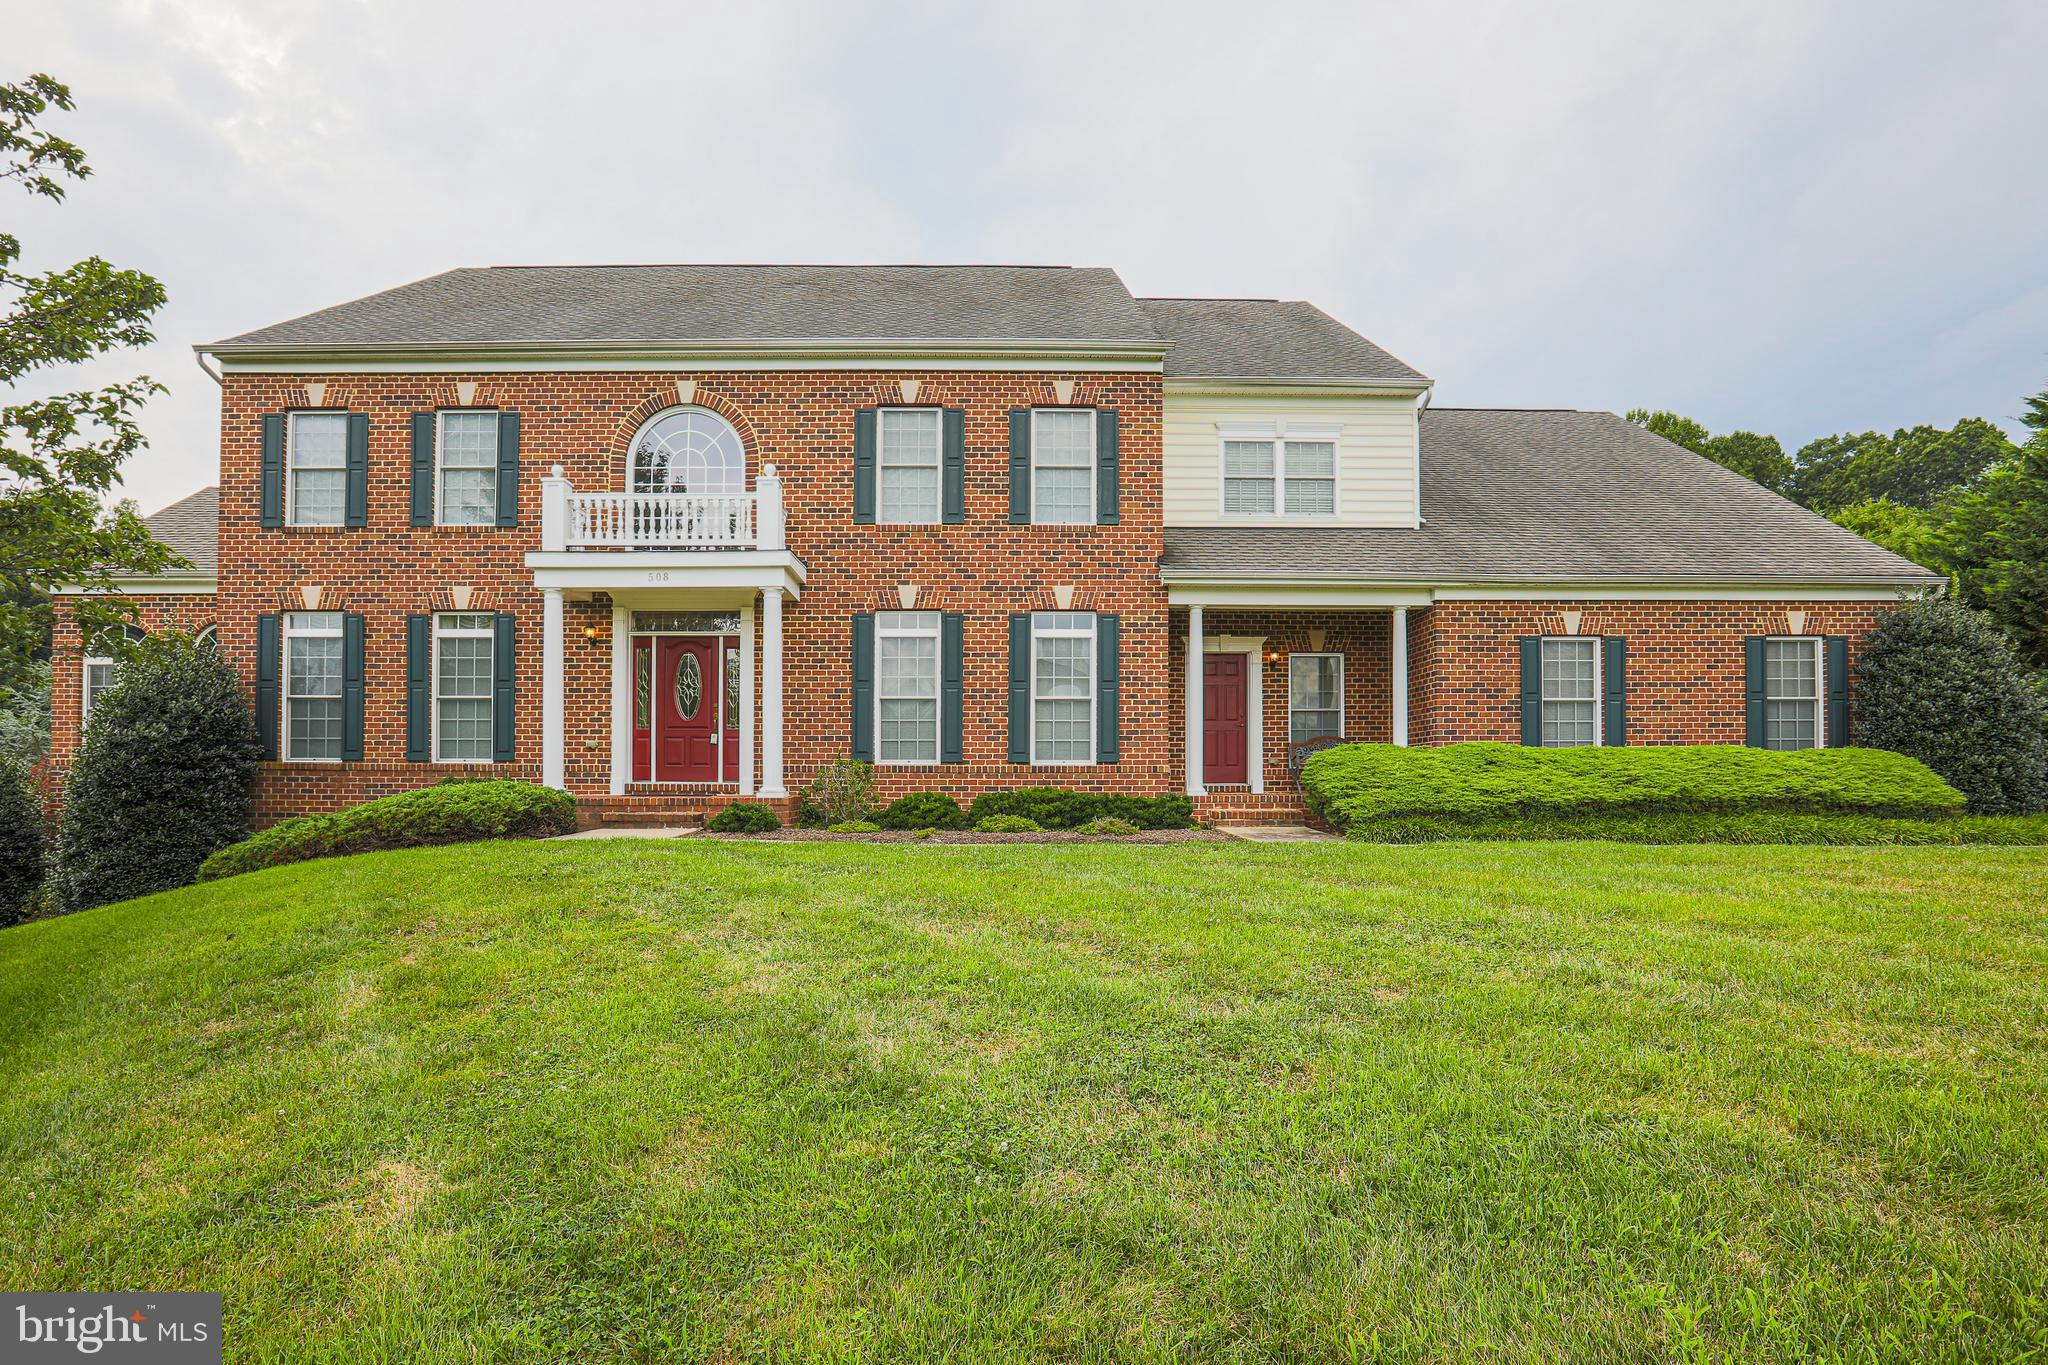 508 Timber Springs Ct, Reisterstown, MD, 21136